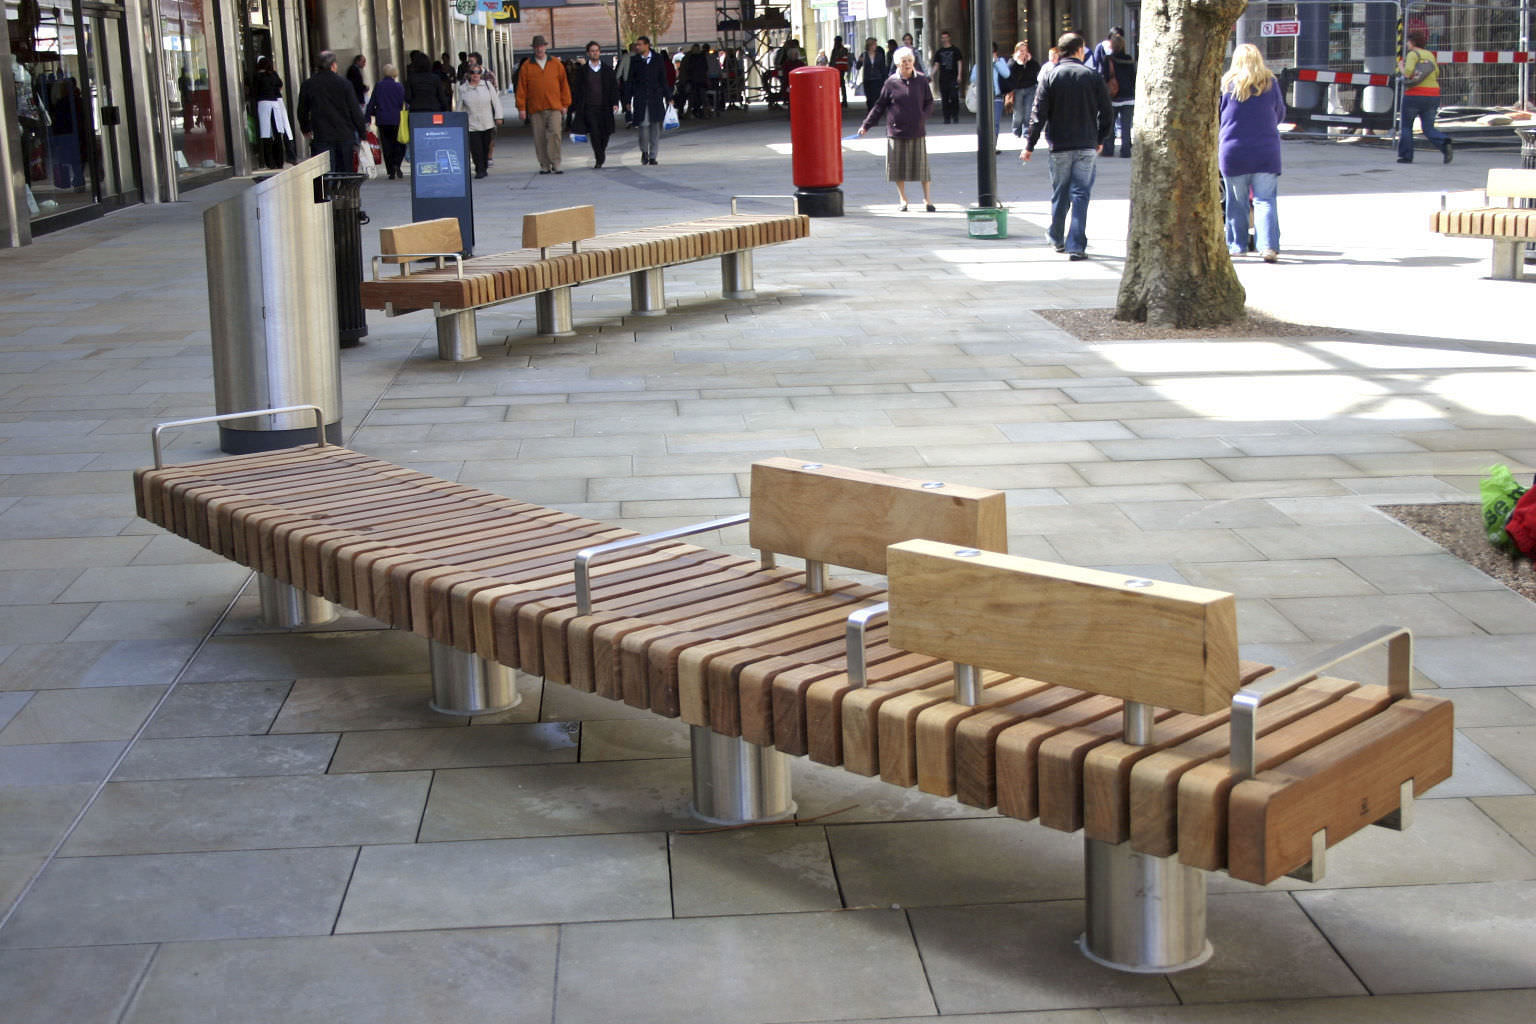 Public Bench Contemporary Wooden Stainless Steel